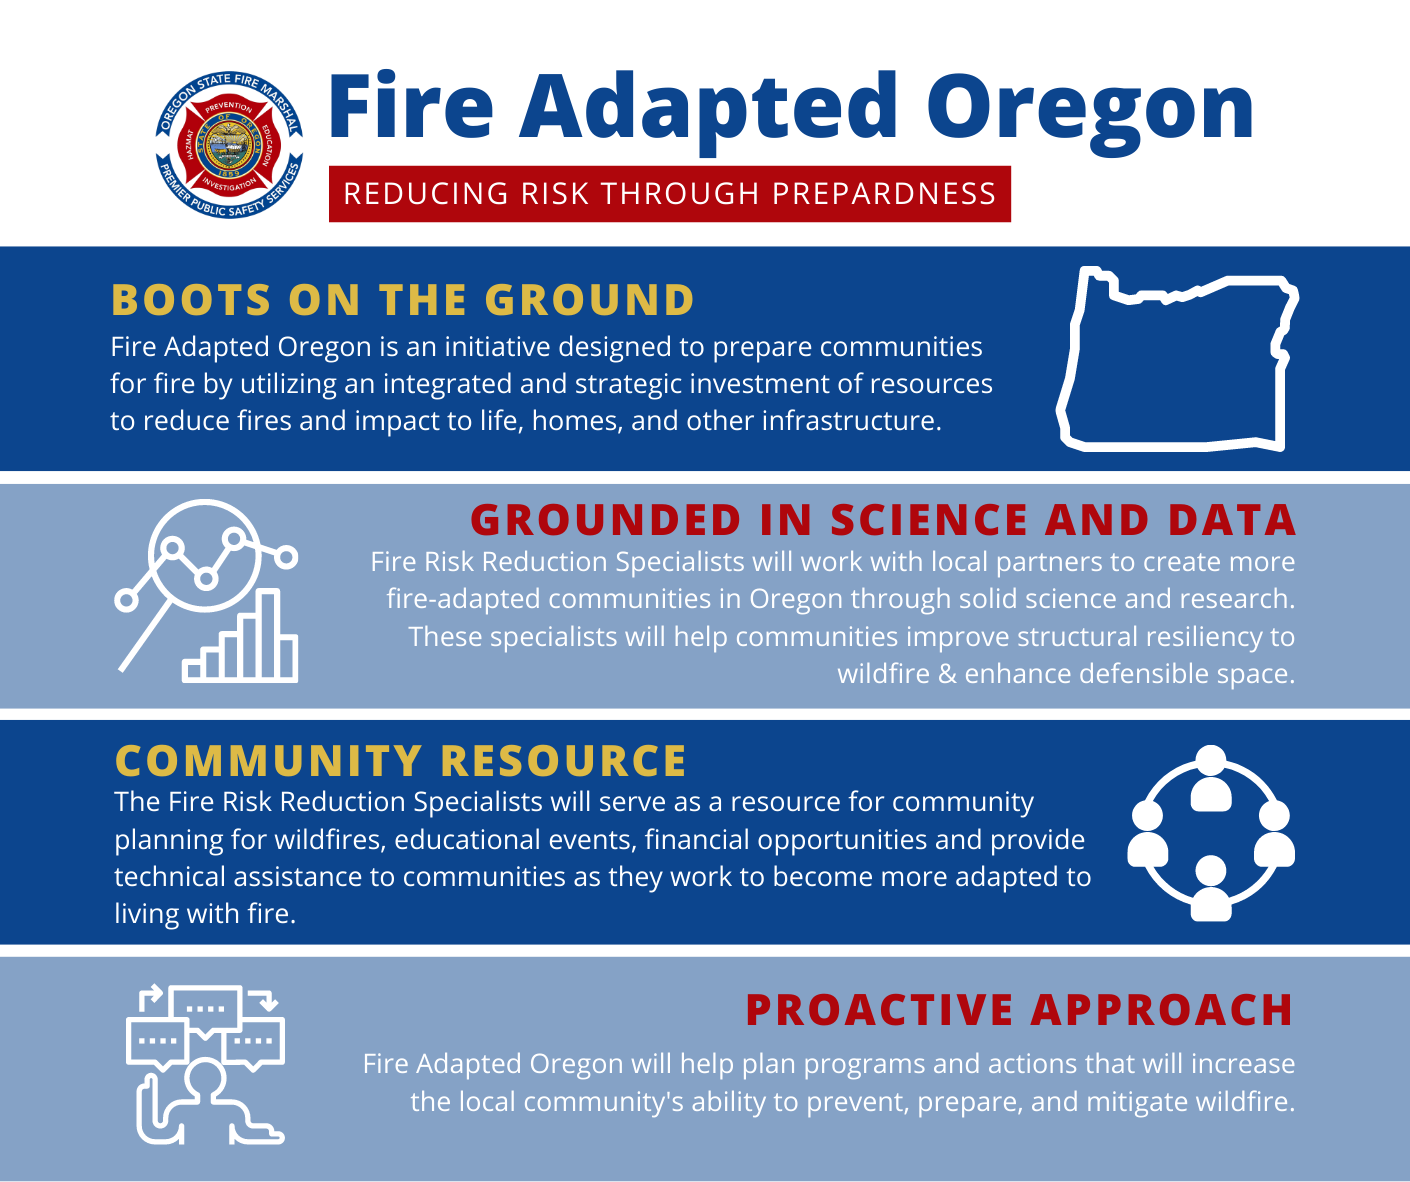 Fire Adapted Oregon, reducing risk through preparedness, boots on the ground, grounded in science, community resource, proactiveapproach